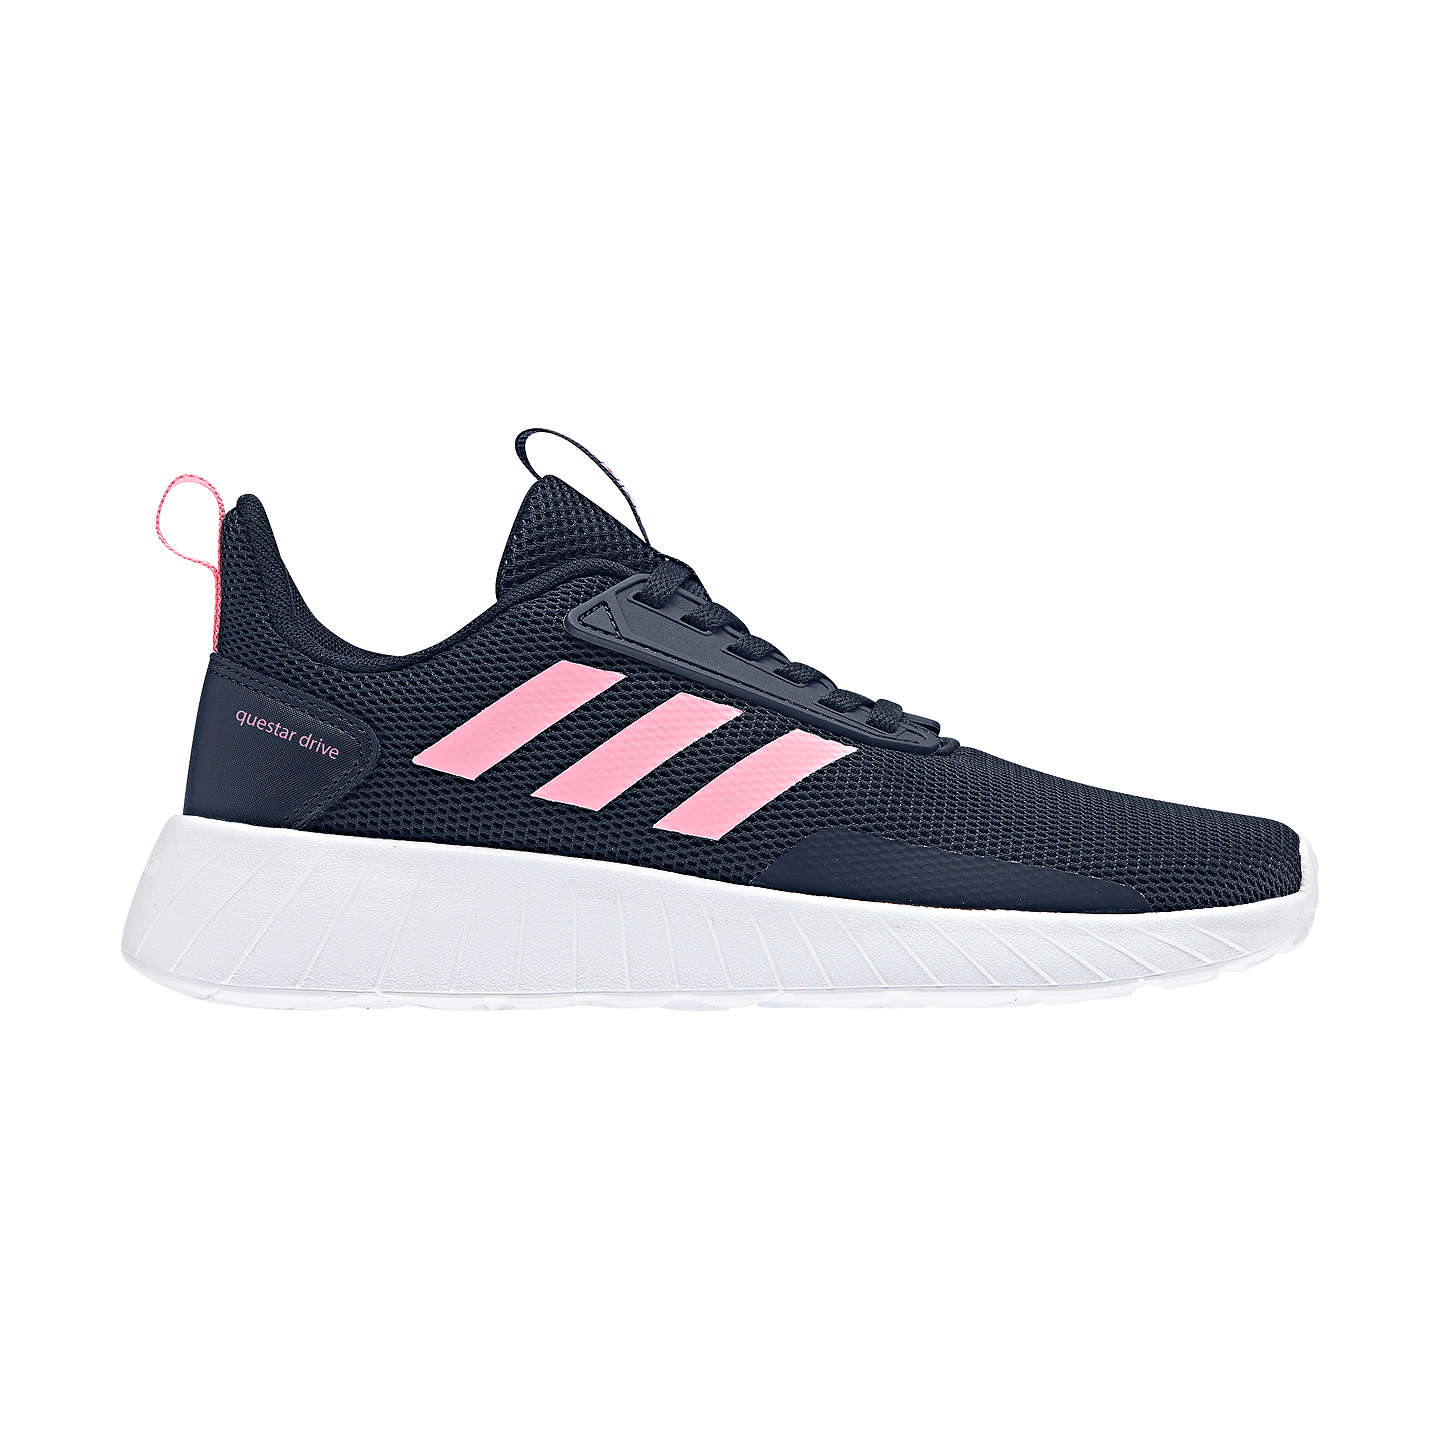 ADIDAS QUESTAR DRIVE TRAINERS shop for cheap price extremely cheap price Cheapest YpvNFeGVA